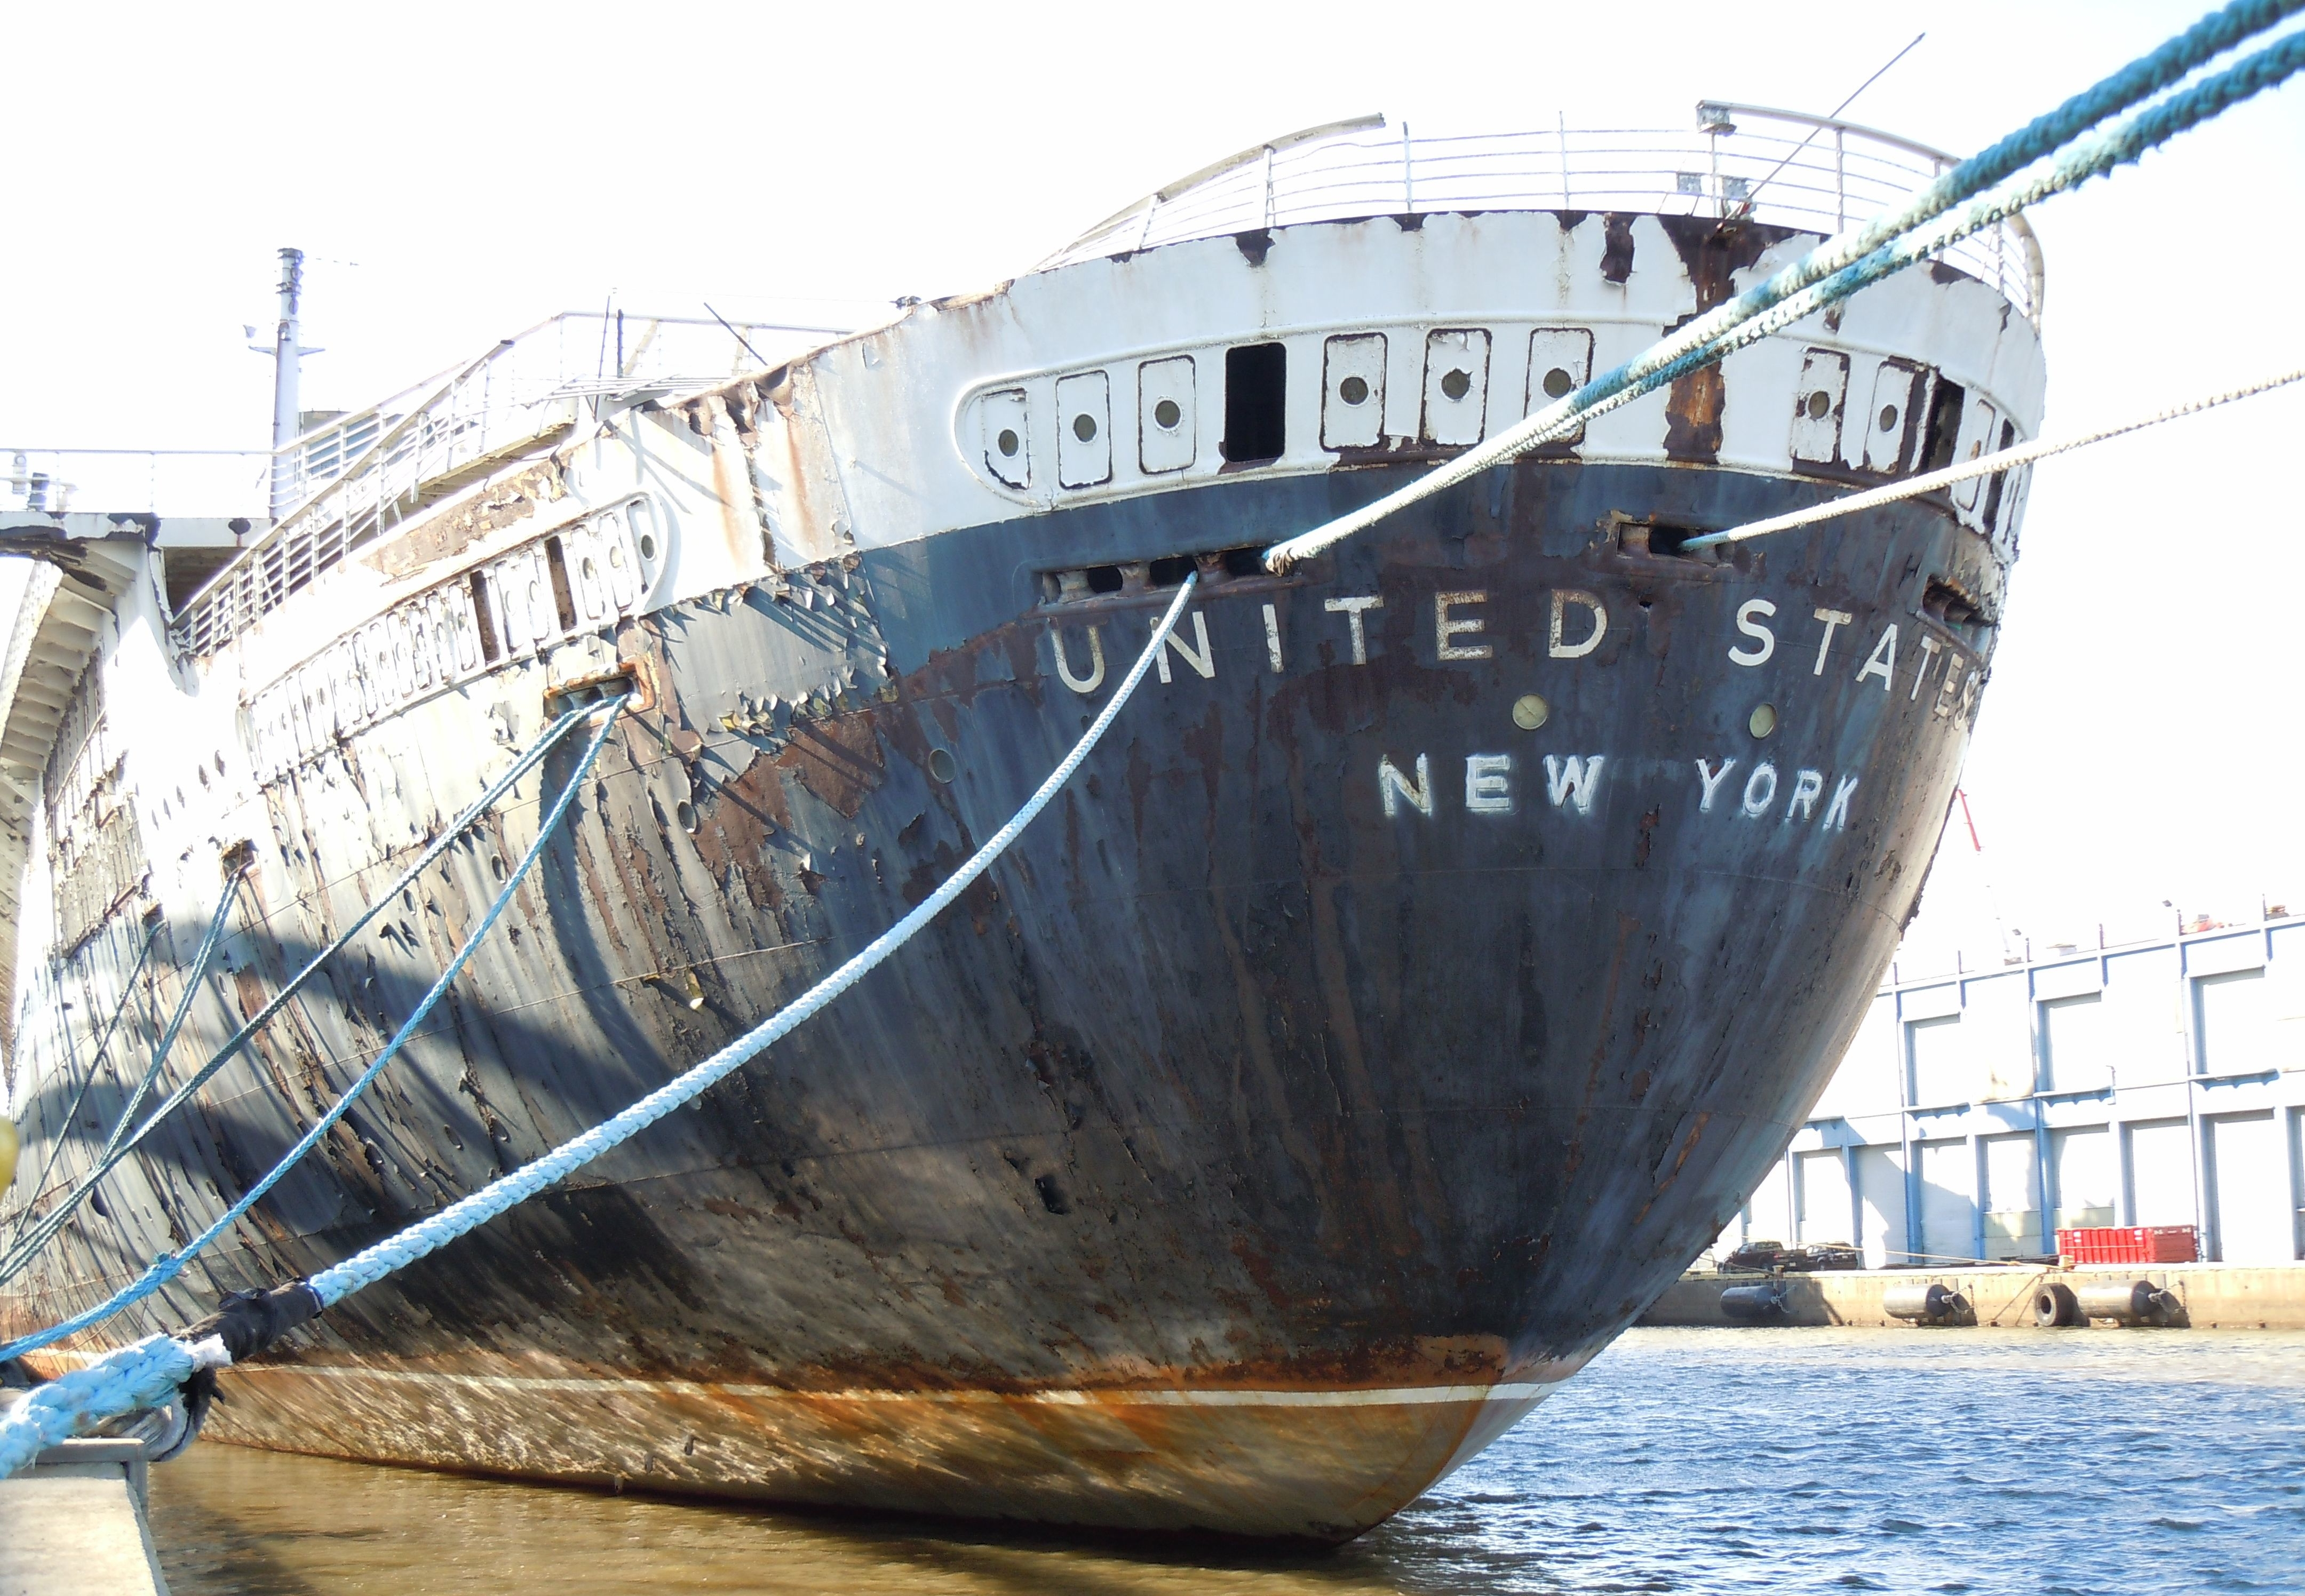 Stern of SS United States in Philadelphia, Pennsylvania. Photo taken on March 15, 2014.